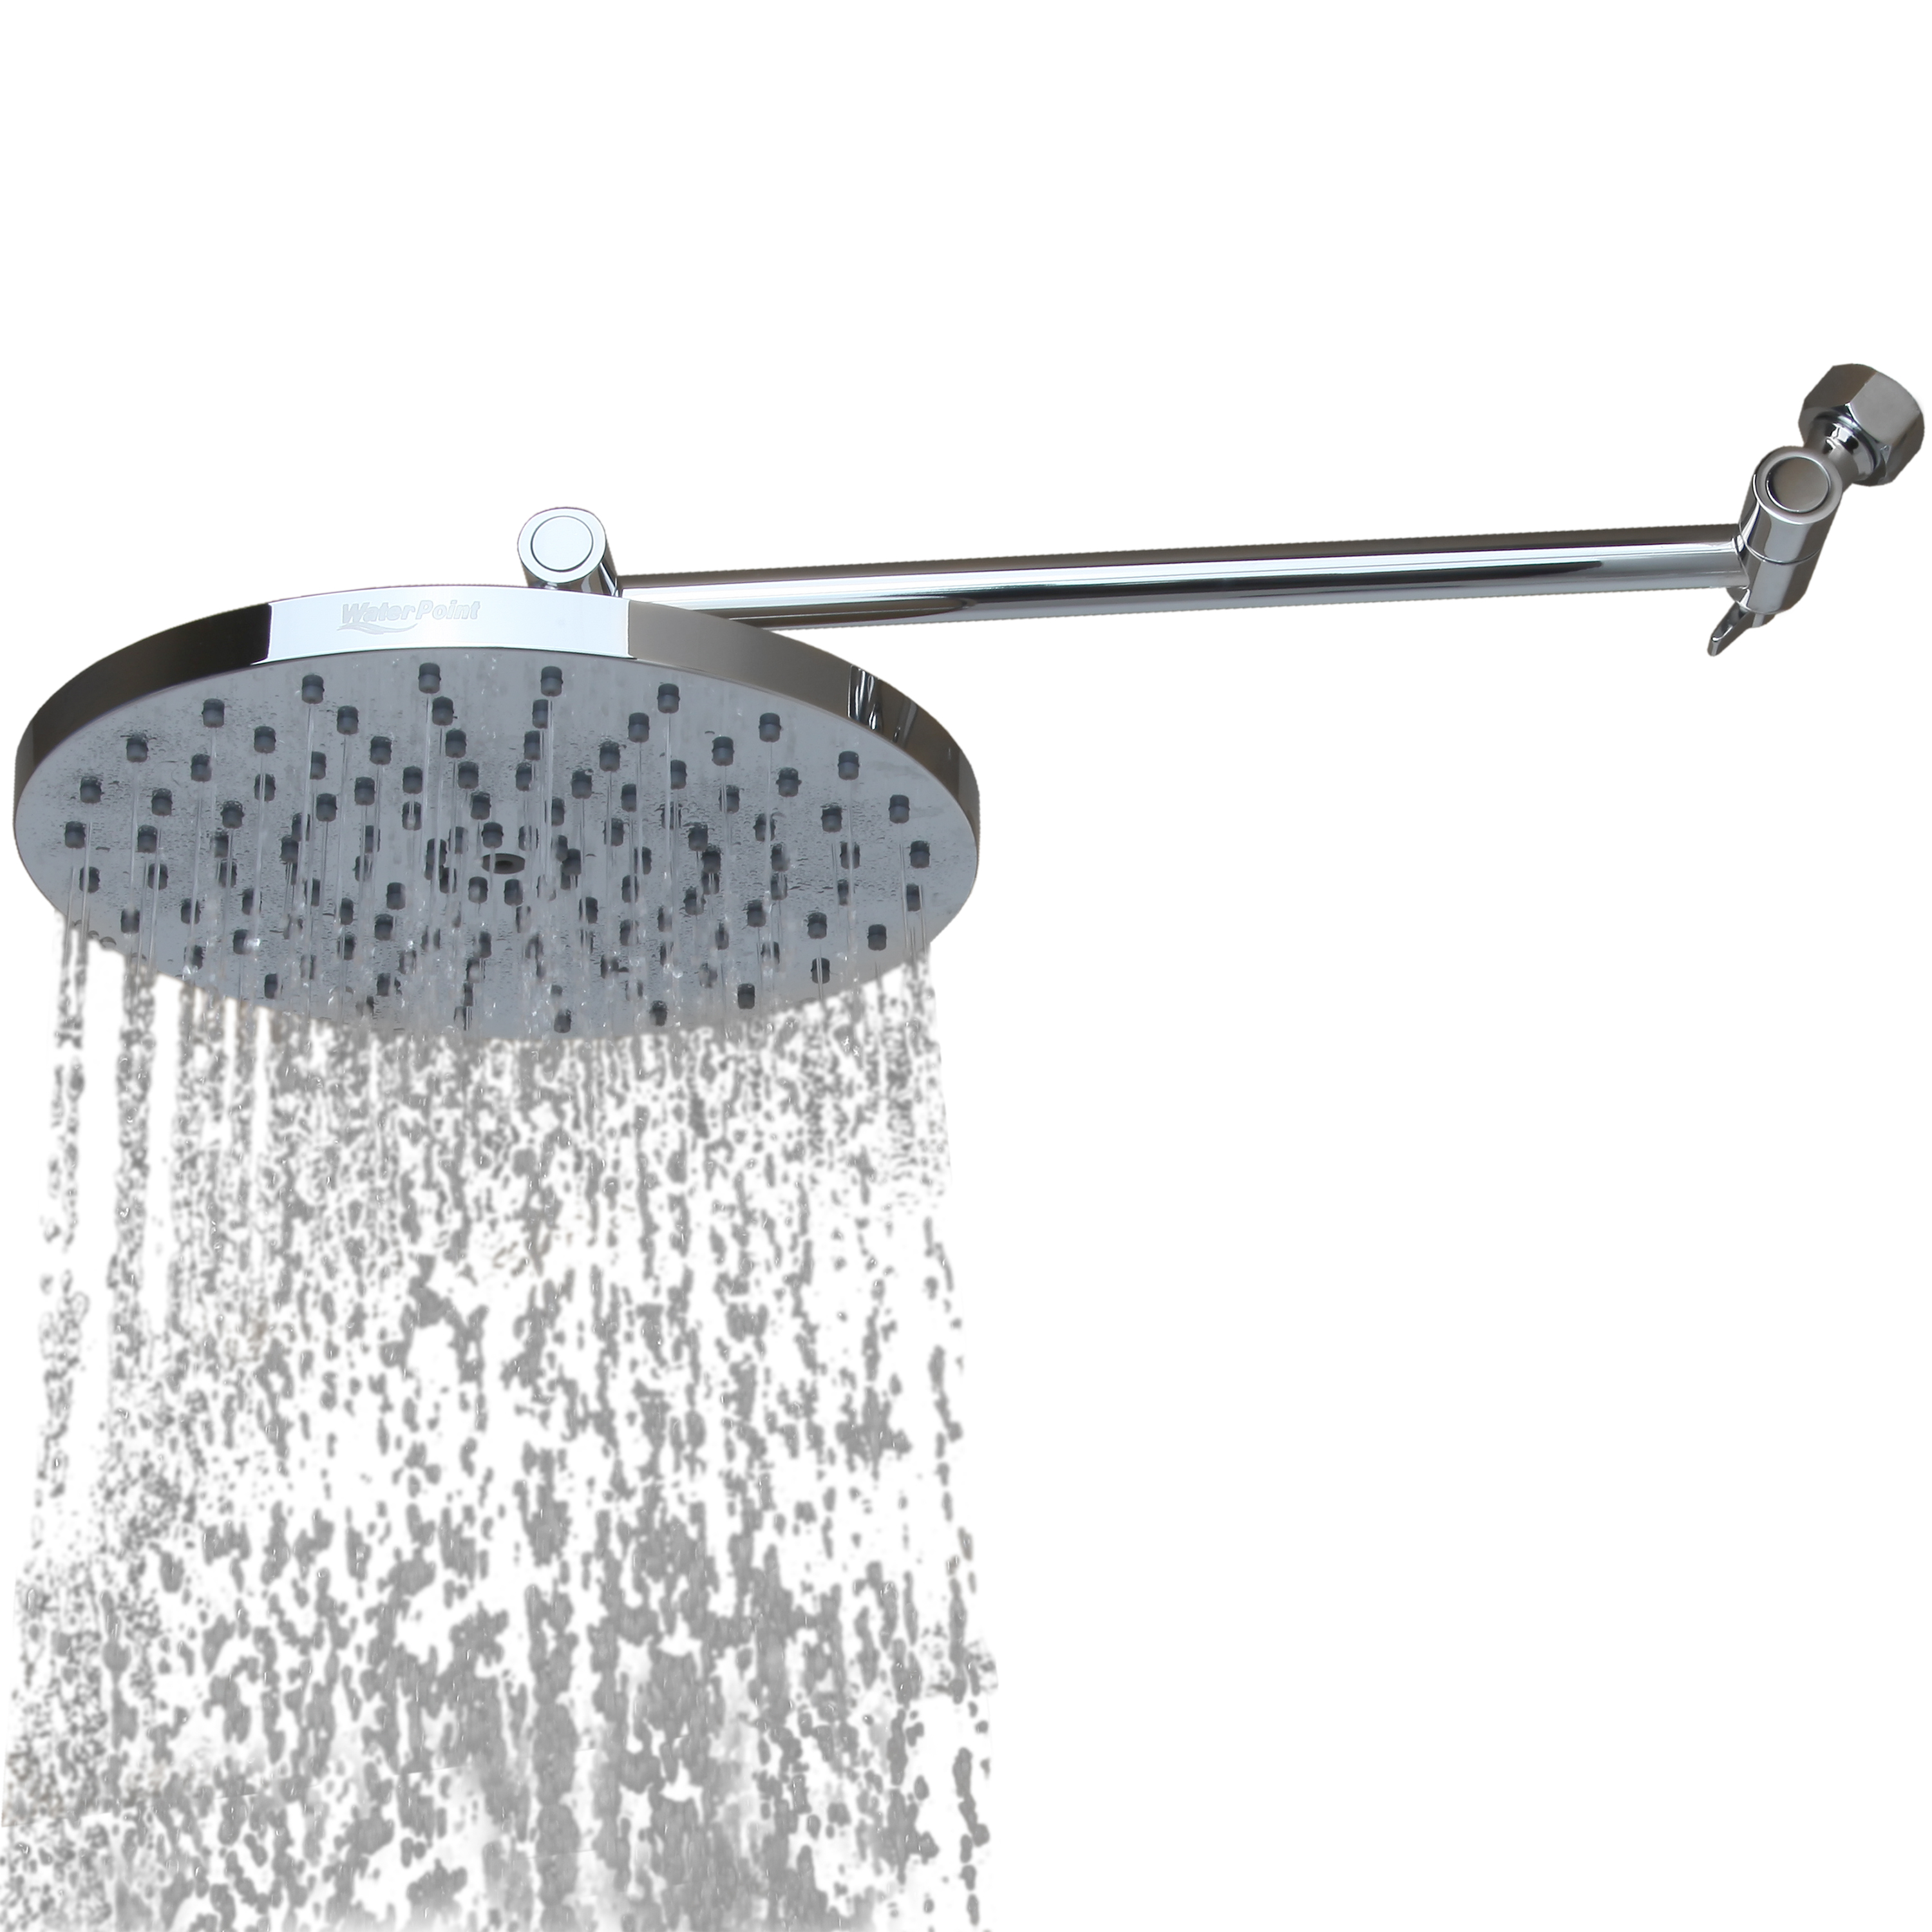 8 Inch Rain Shower Head With Air Intake System